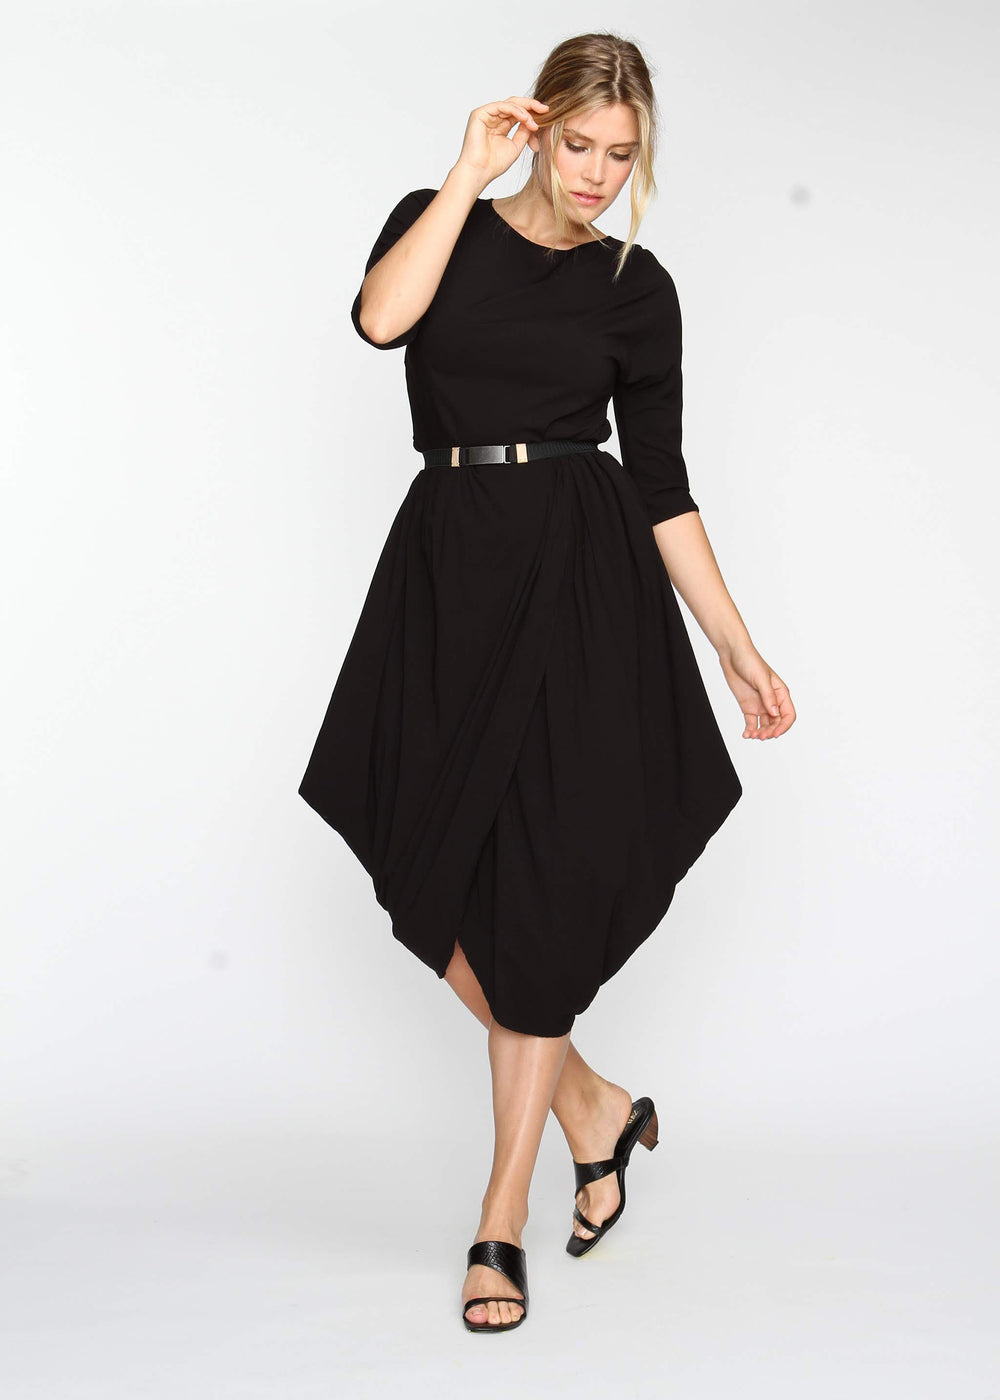 Year Round Maxi AKA YRM -  Black - Last Chance Final Sale - The Frock NYC